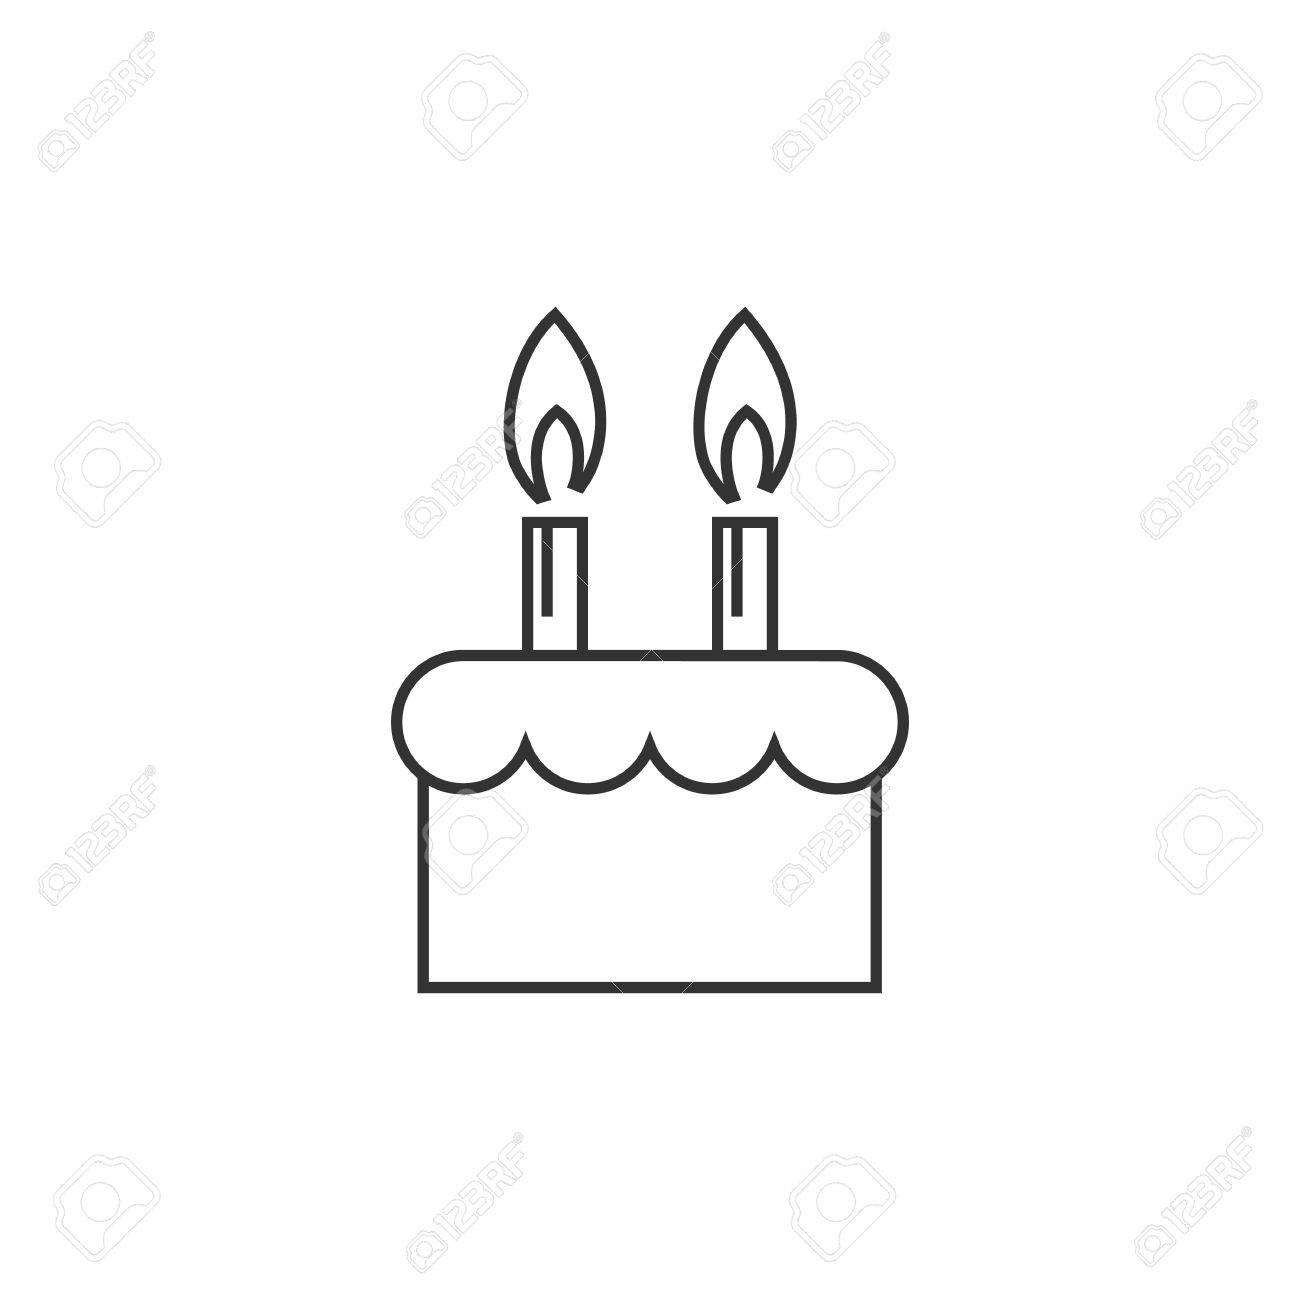 Birthday Cake Icon In Thin Outline Style Royalty Free Cliparts